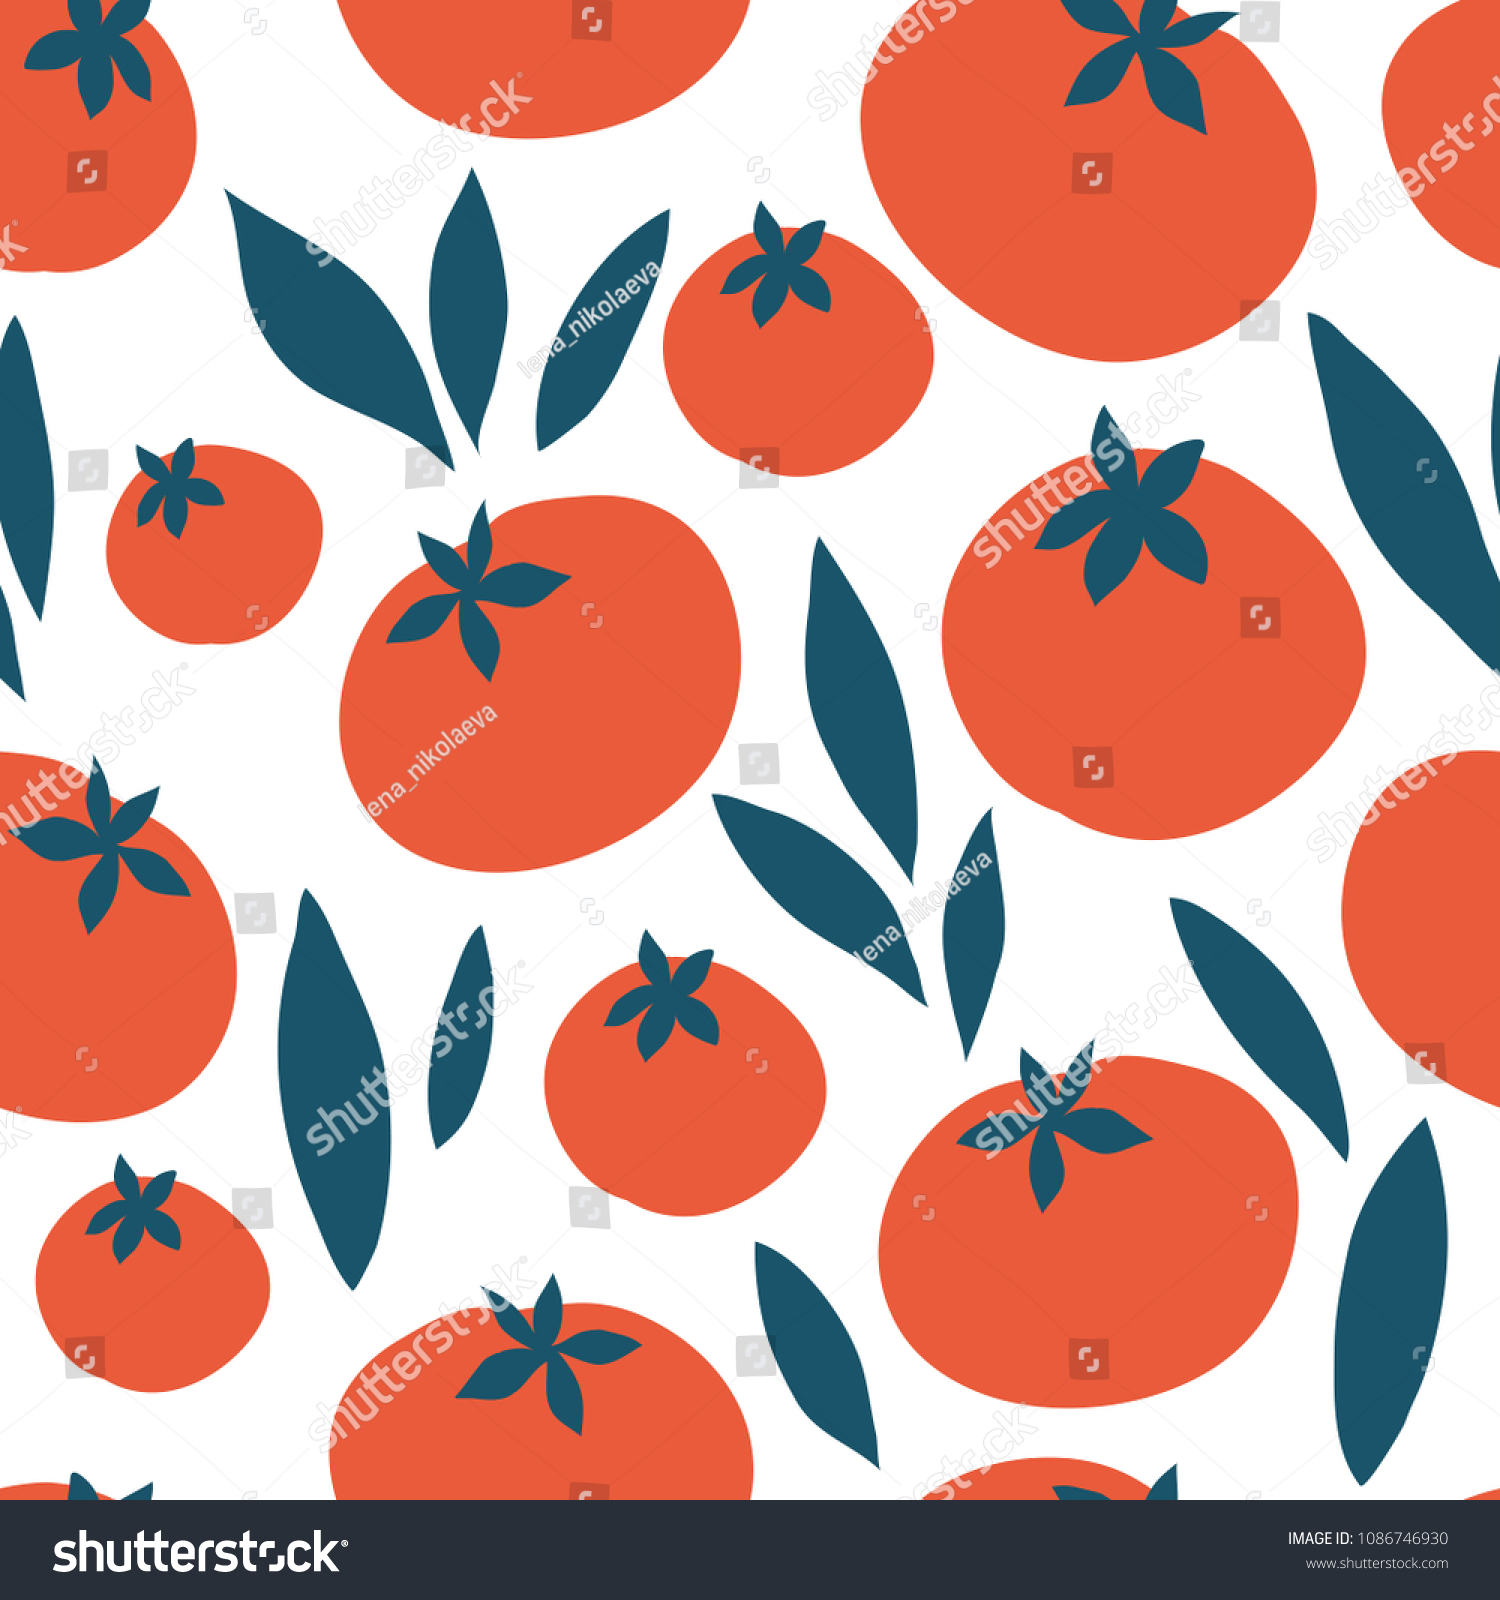 Tomato vector seamless pattern. Endless texture for kitchen wallpaper, textile, fabric, paper.Food background. Flat vegetables on white. Vegan, farm, natural